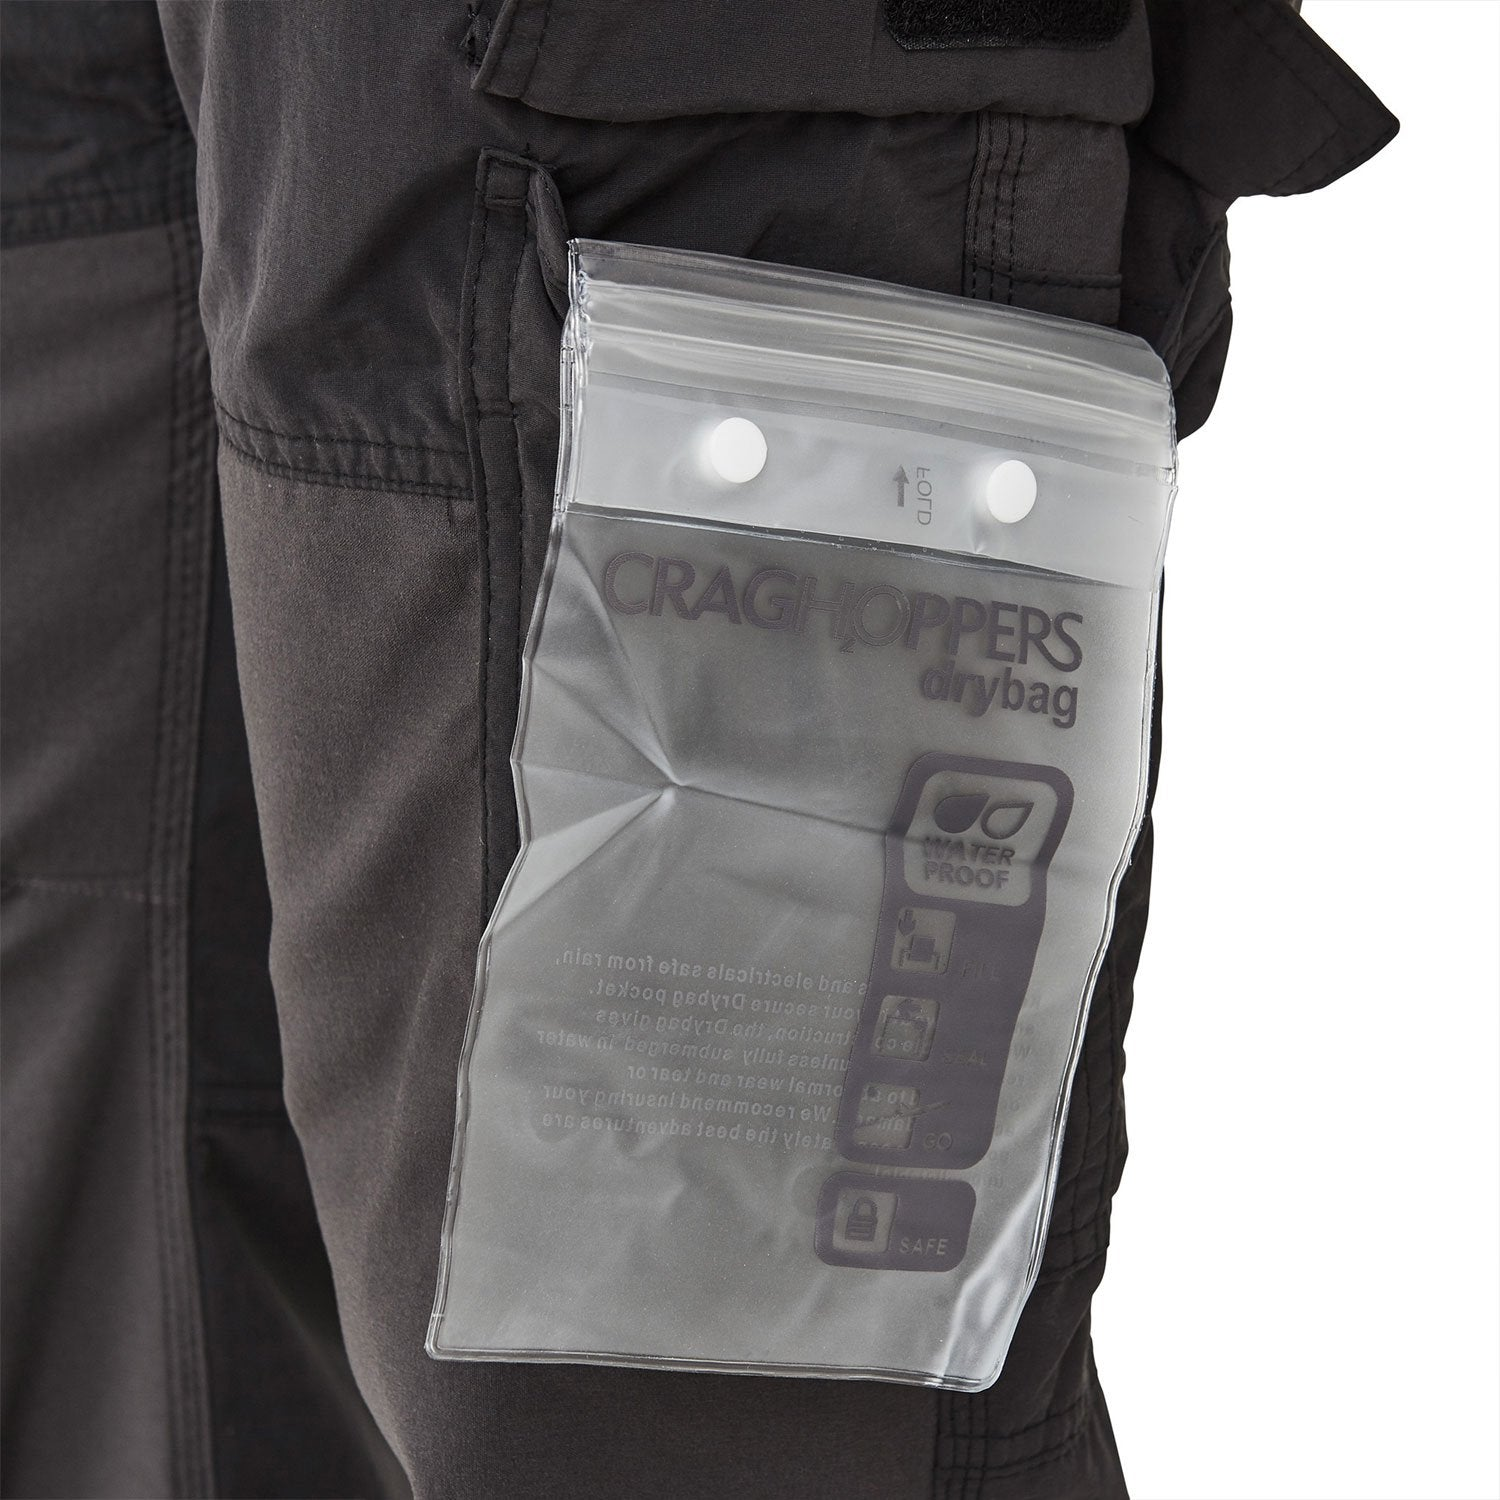 Dry bag pocket insert